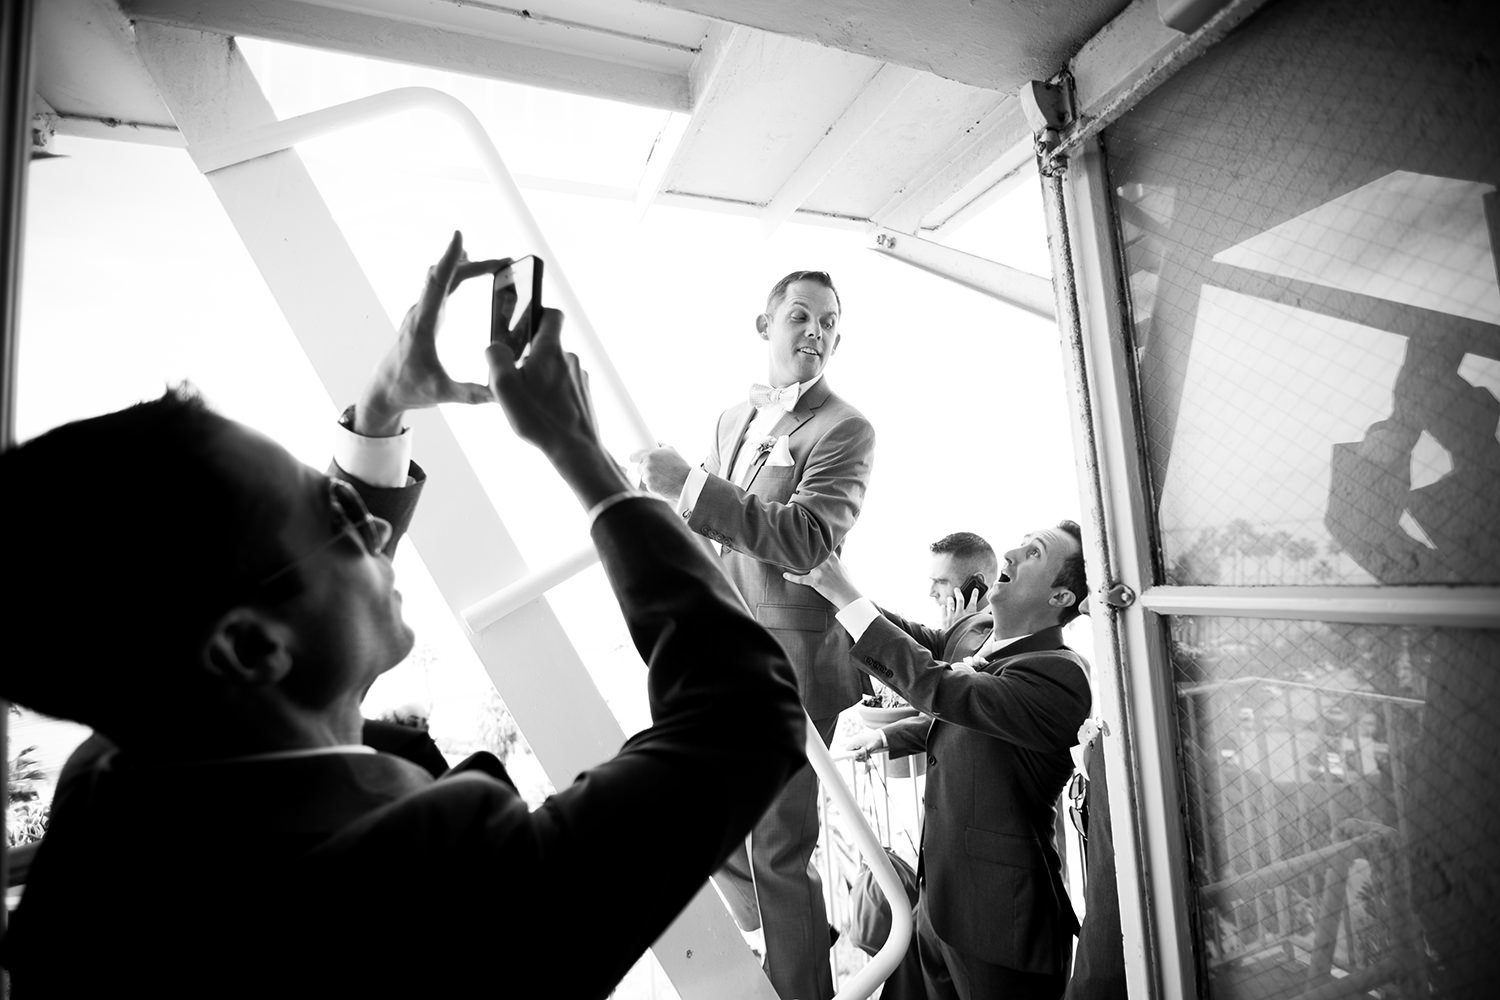 Photojournalistic moment captured of the groom and his groomsmen on the fire escape